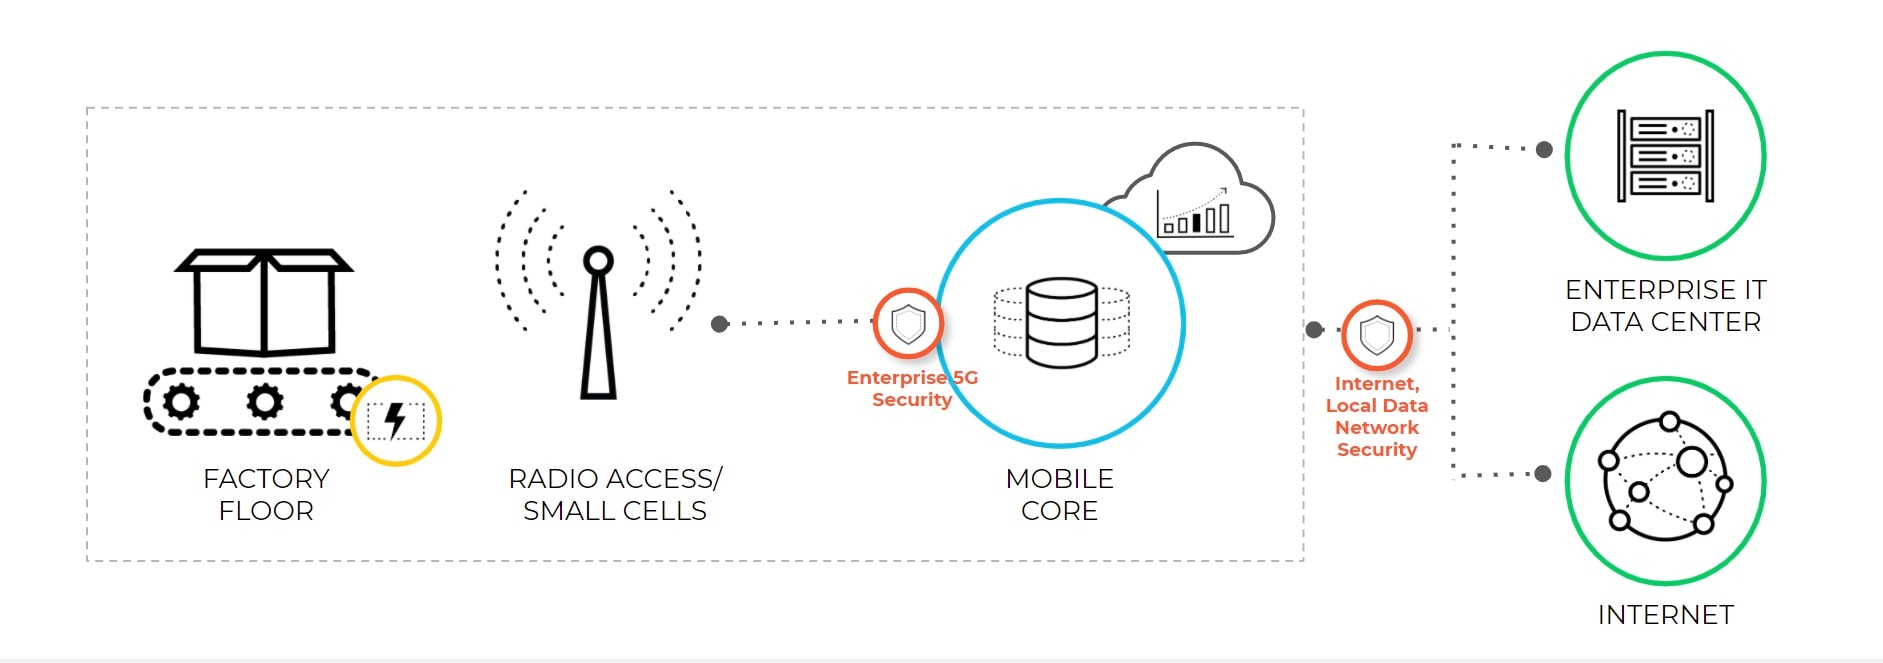 The items circled in orange show how 5G-native security operates throughout the 5G architectures, including covering cellular IoT security, 5G slice security, RAN security, edge cloud security, 5G core security, internet security and roaming security.